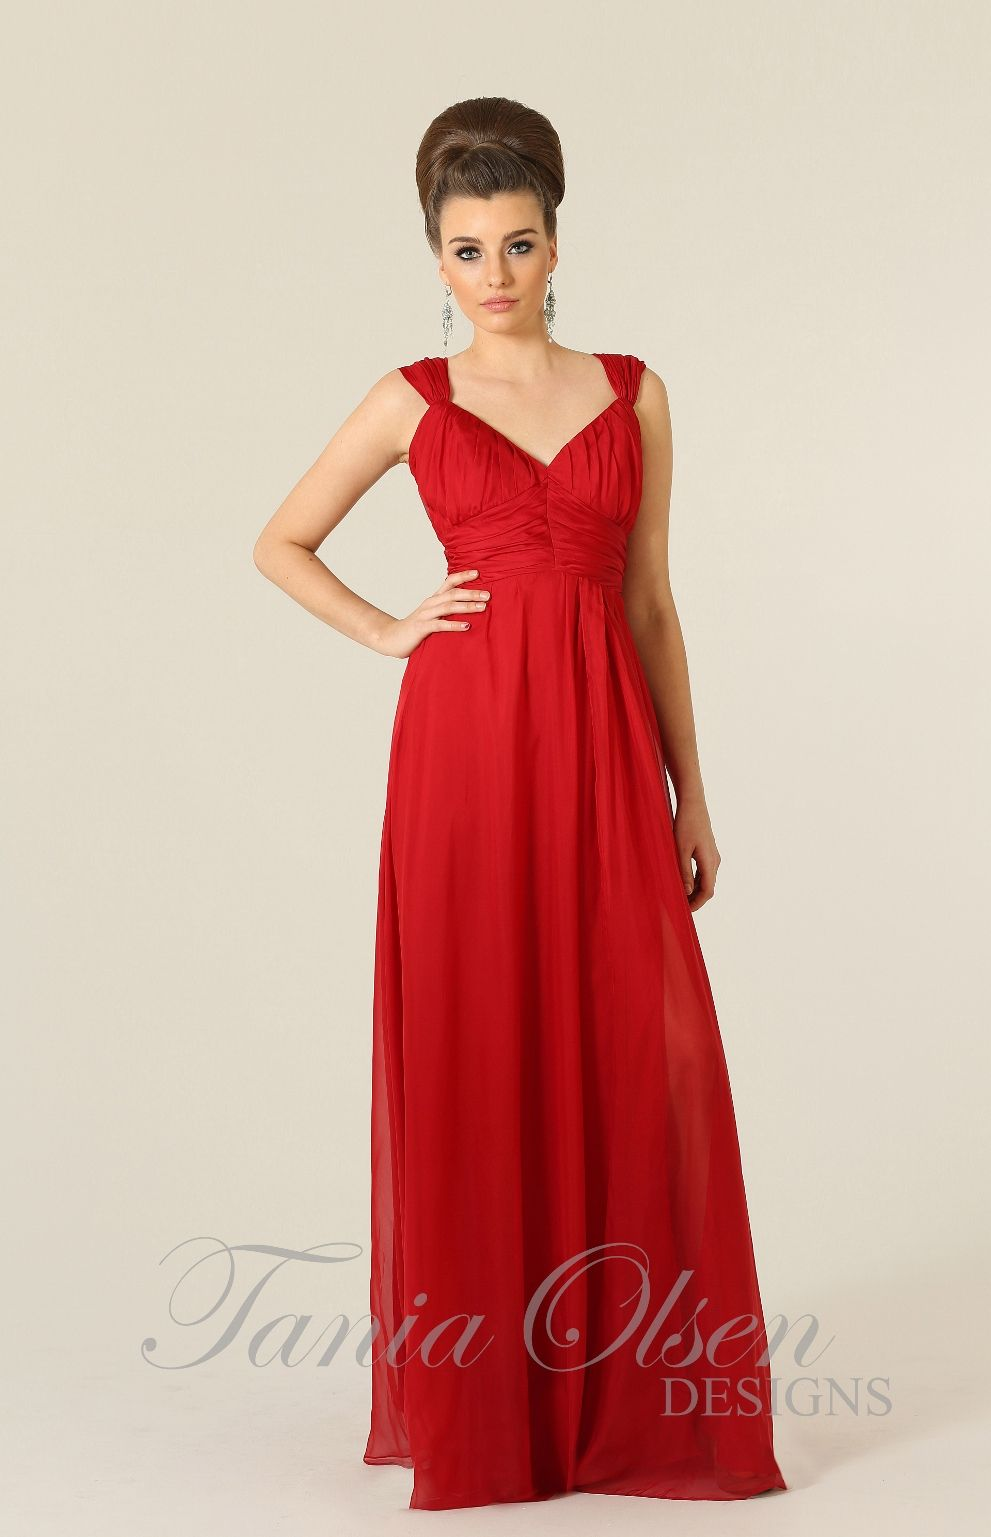 Silk dreams bridesmaid dress red by Tania Olsen elegant evening dress with skirt leg split perfect as a formal dress or a bridesmaids dress for all formal occasions.